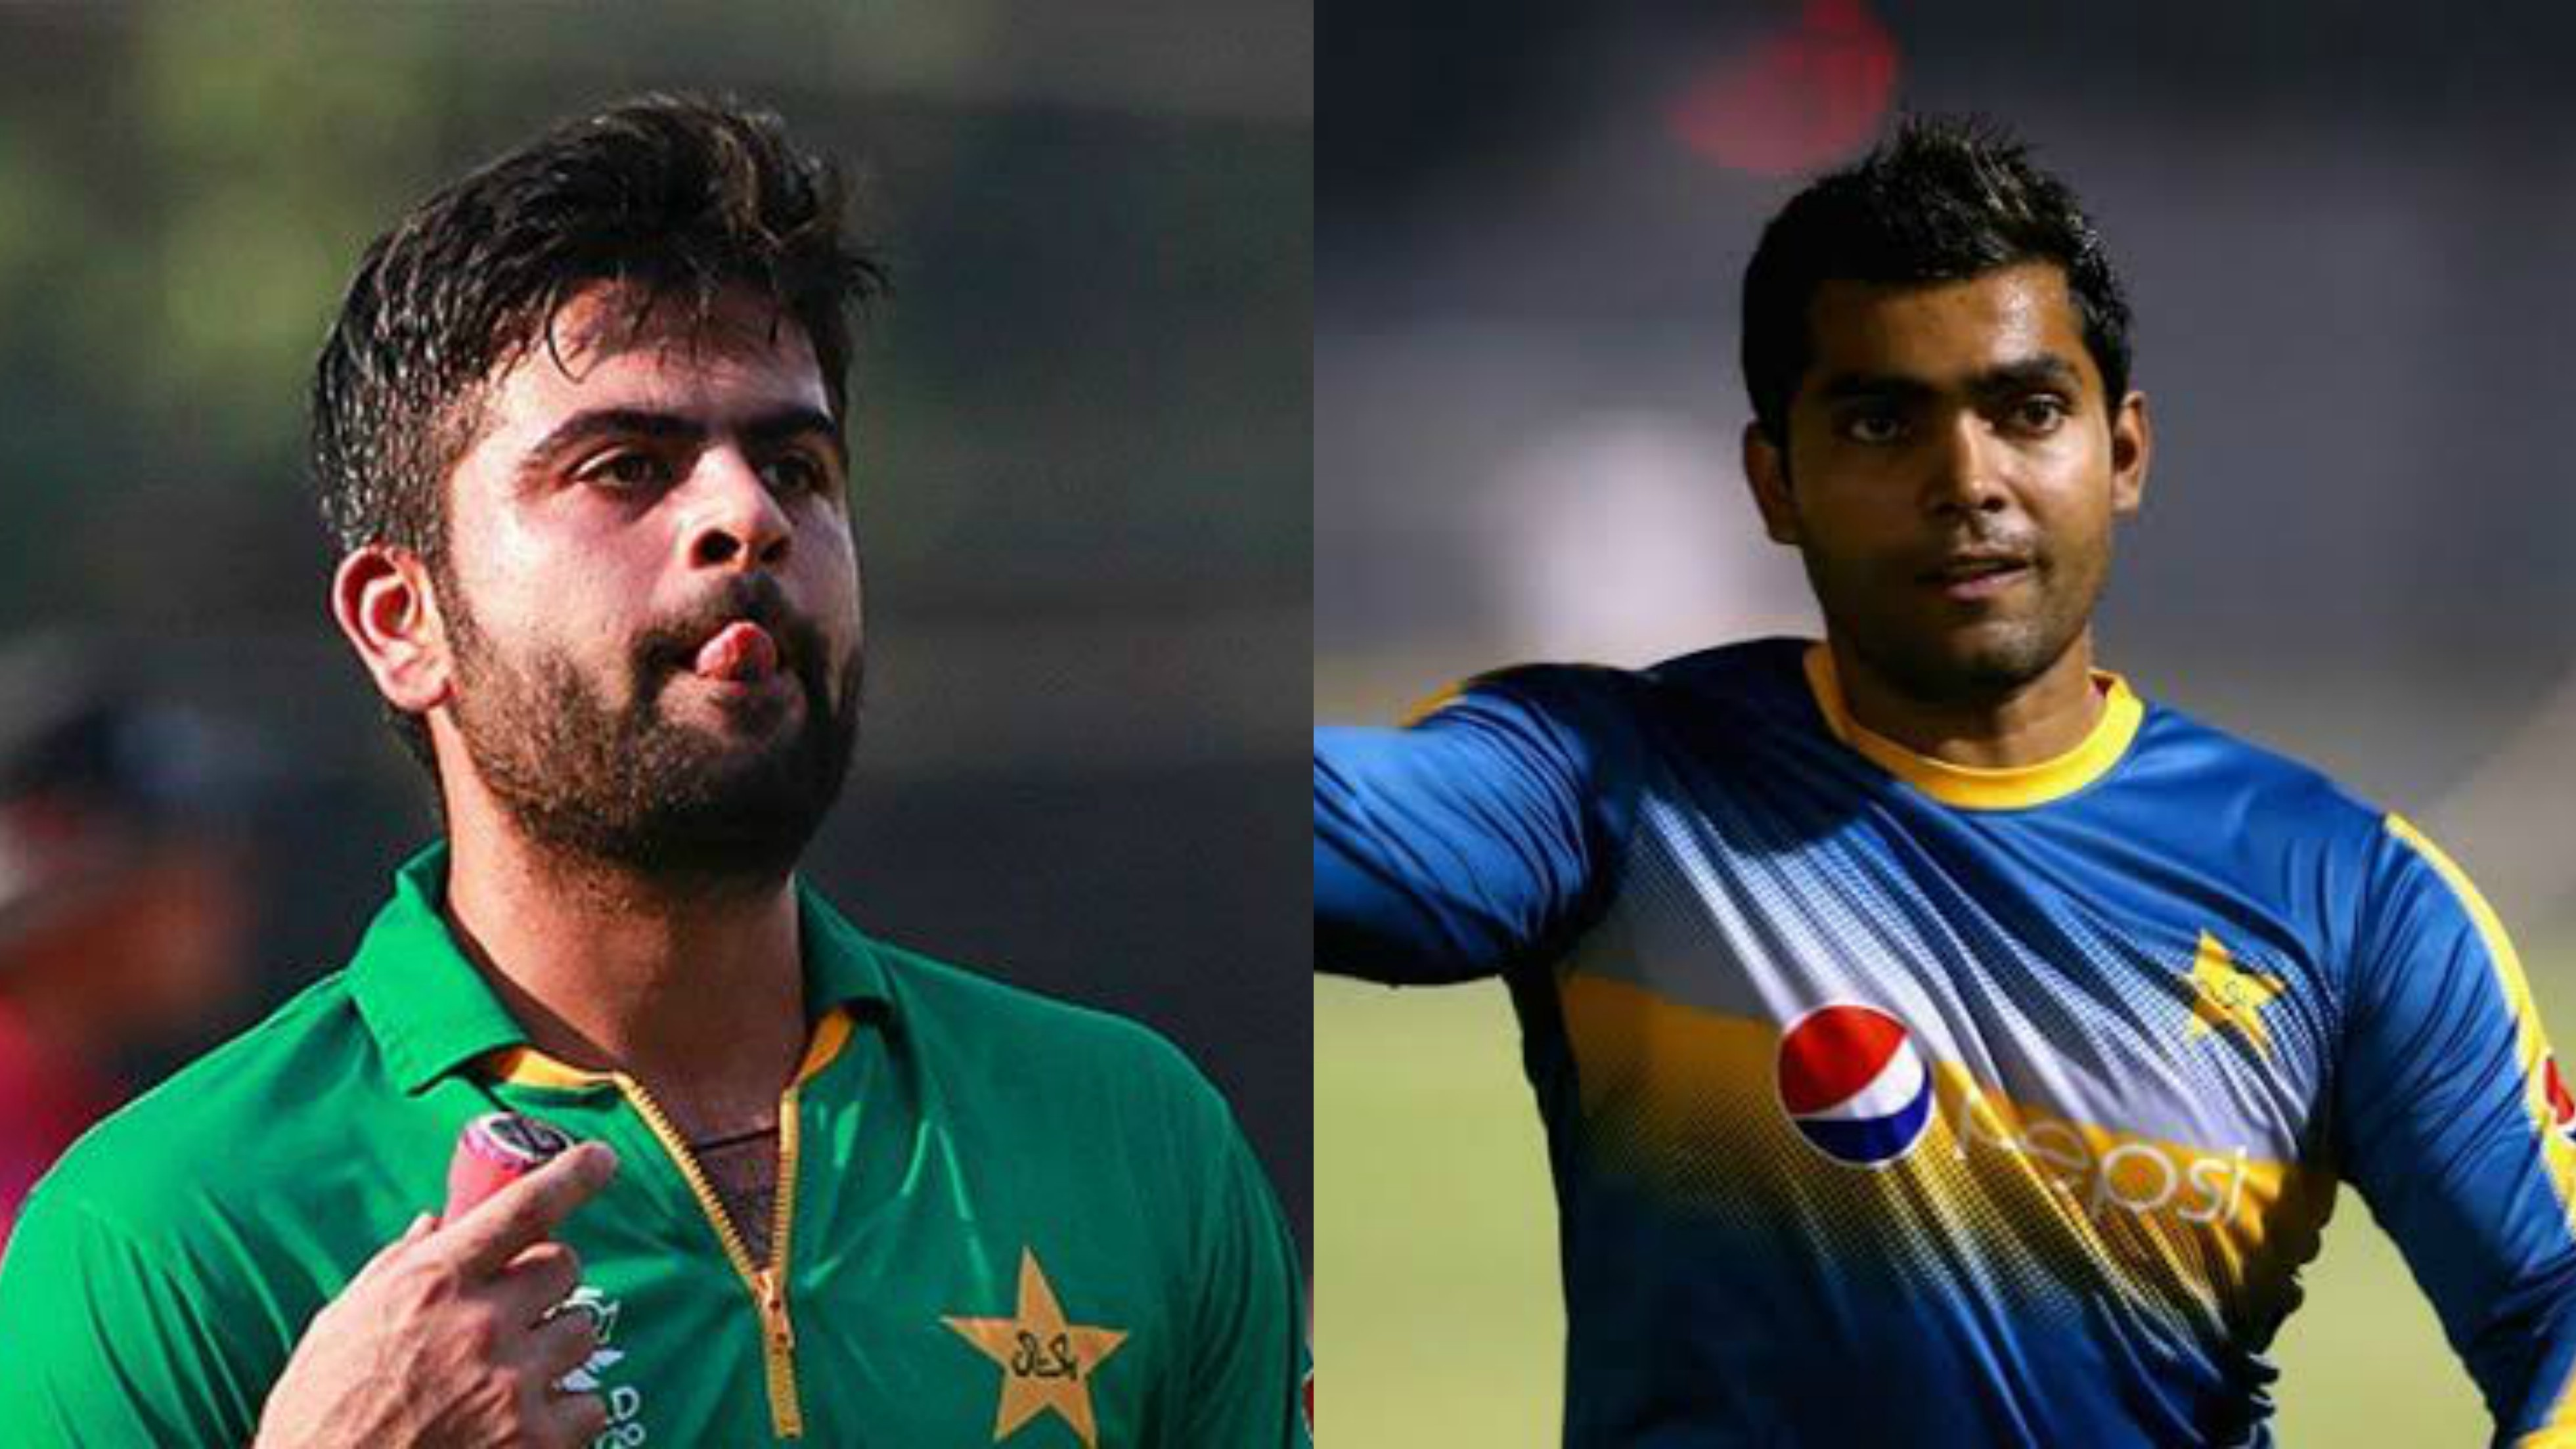 Ahmed Shehzad urges critics to not compare him with fellow countryman Umar Akmal